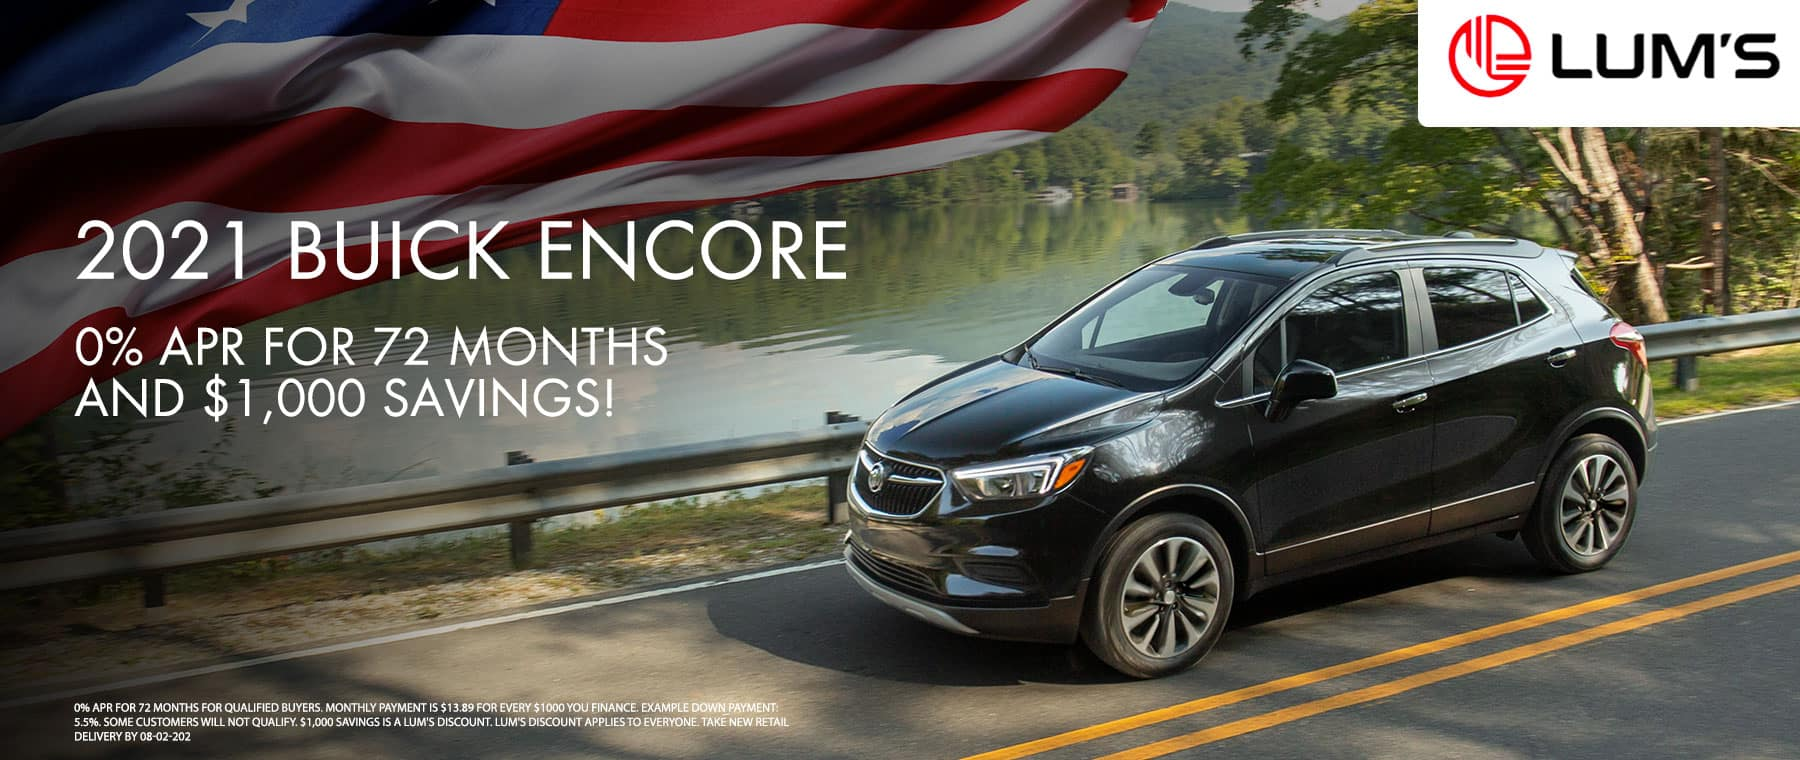 2021 Buick Encore 0% APR for 72 months and $1,000 Savings!